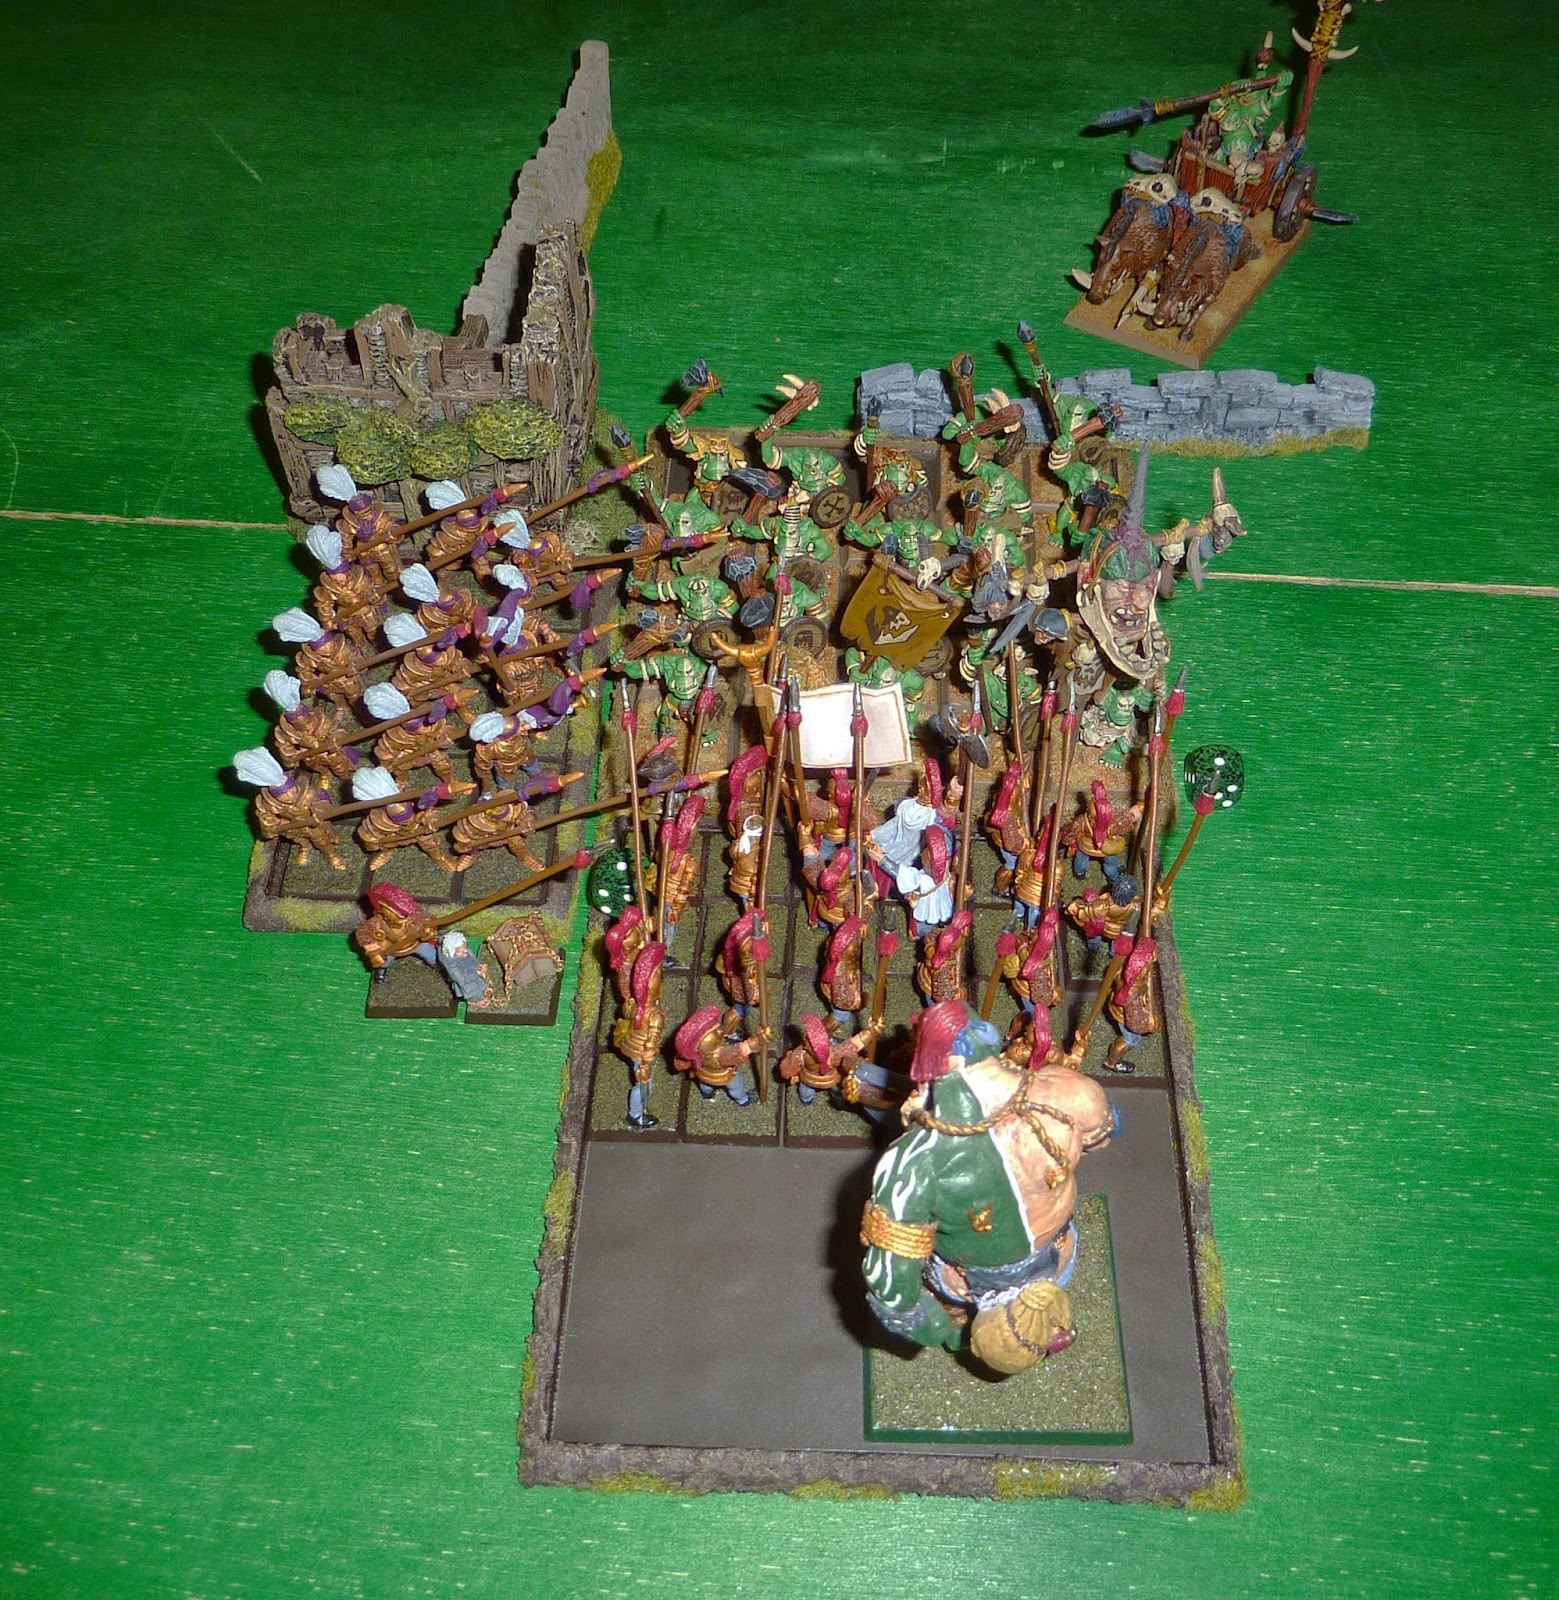 A Warhammer Fantasy Battle Report between Empire and Warriors of Chaos.